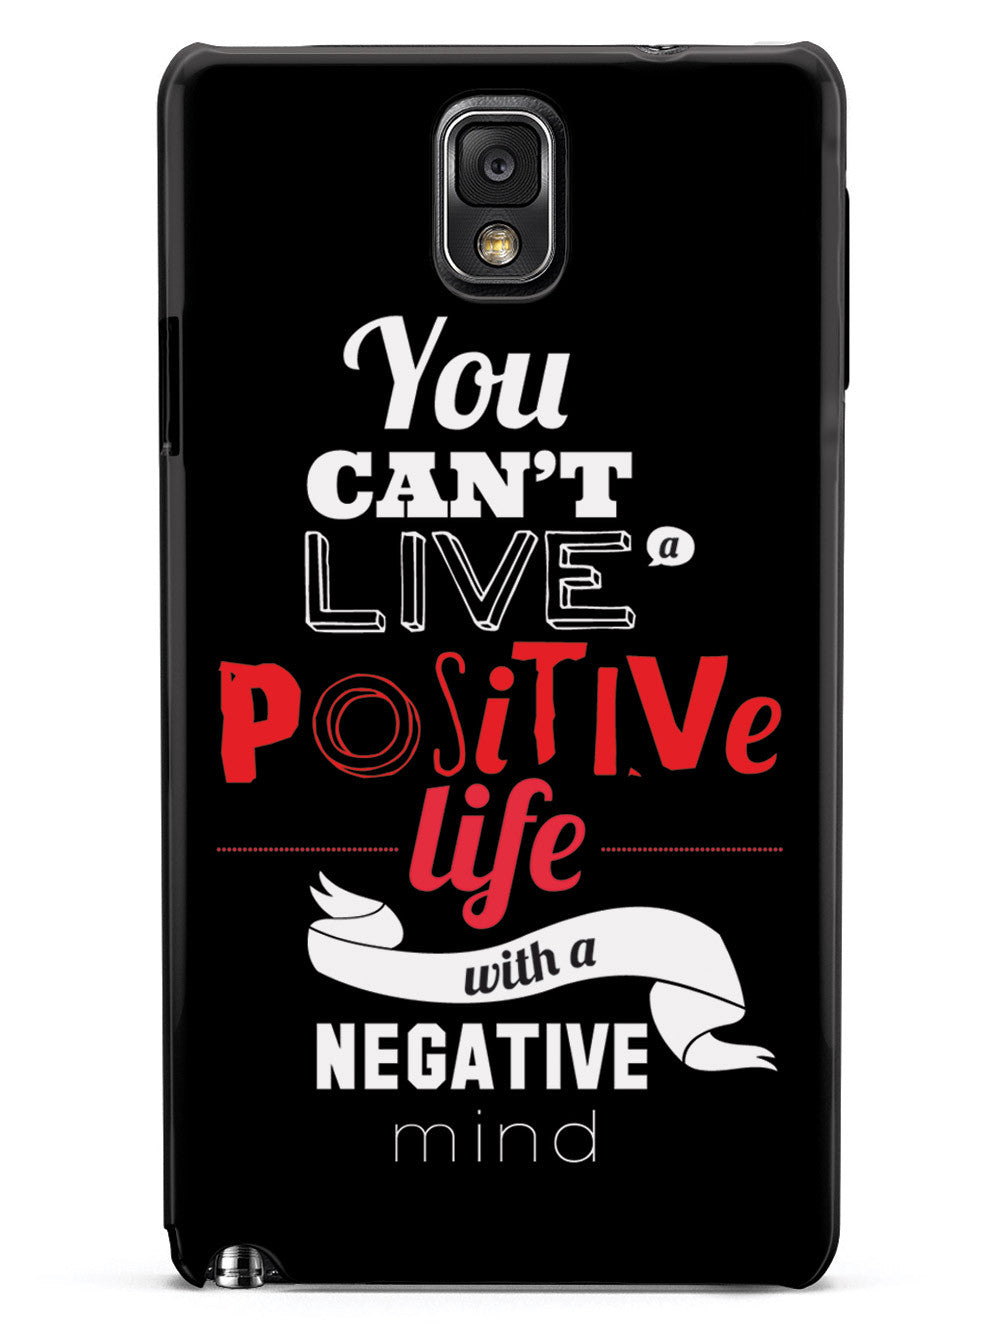 Positive Life, Negative Mind - Black Case